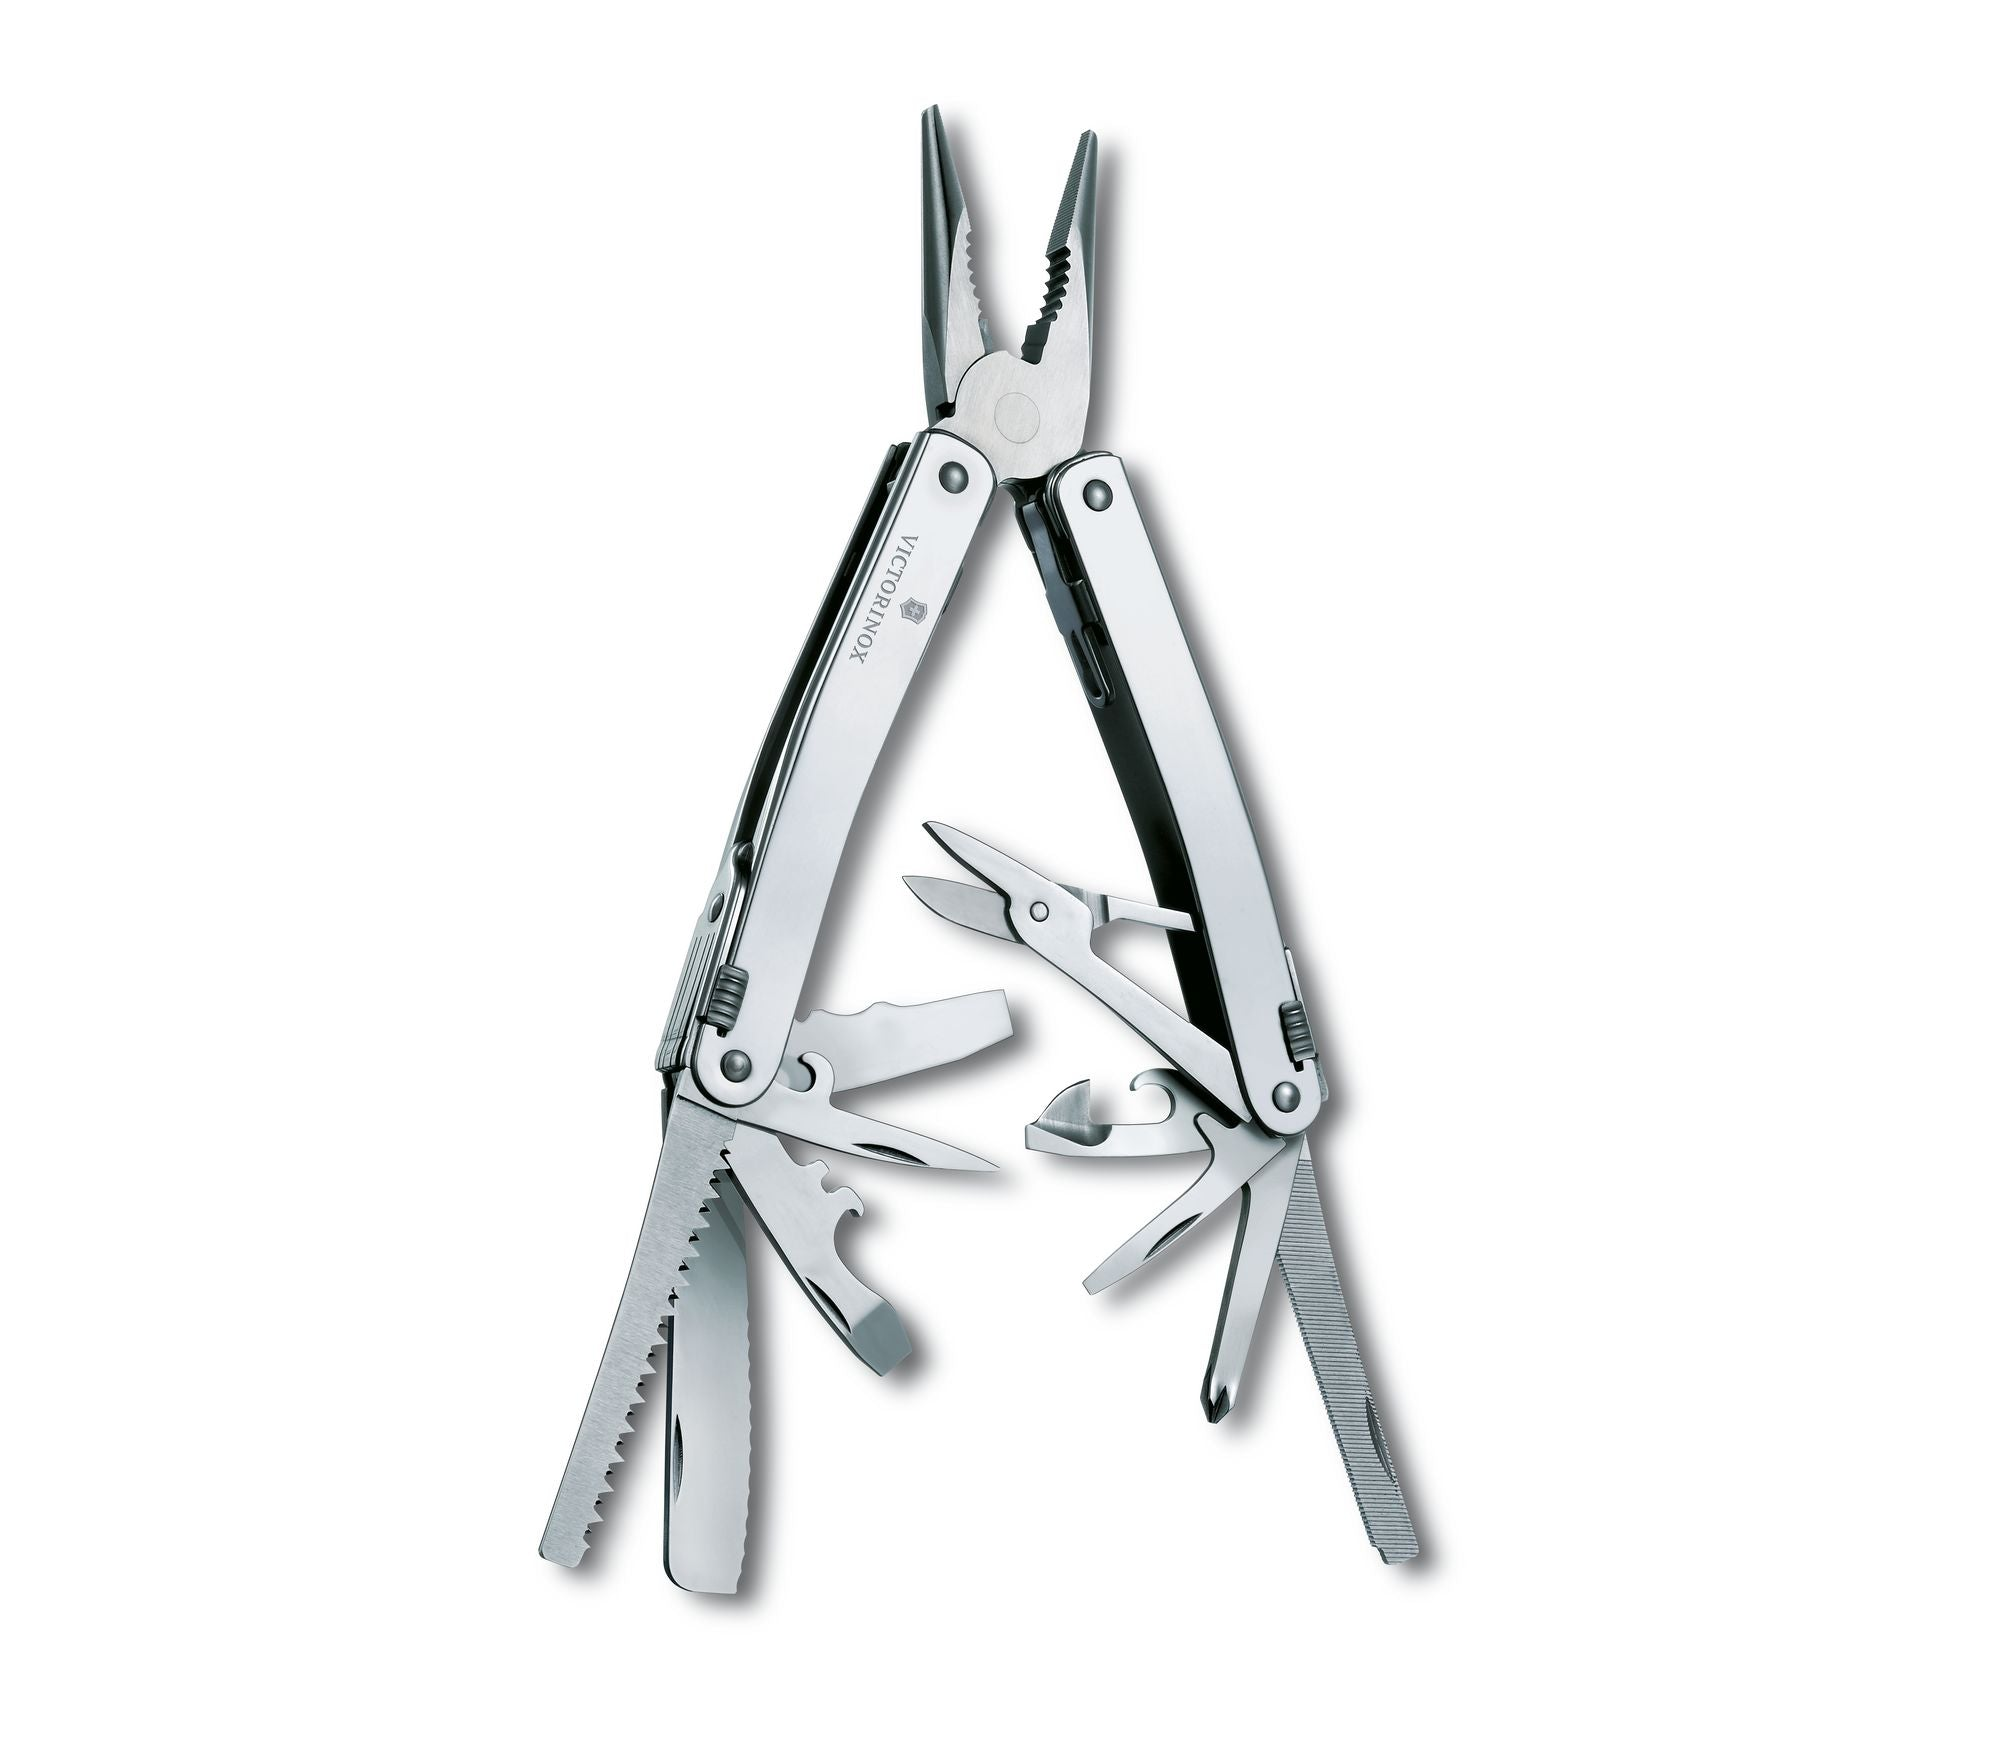 Swiss-army style tool with 35 different functions including all traditional operations, all fit within a standard-shape pair of pliers that come with leather case and swap-out cartridge.